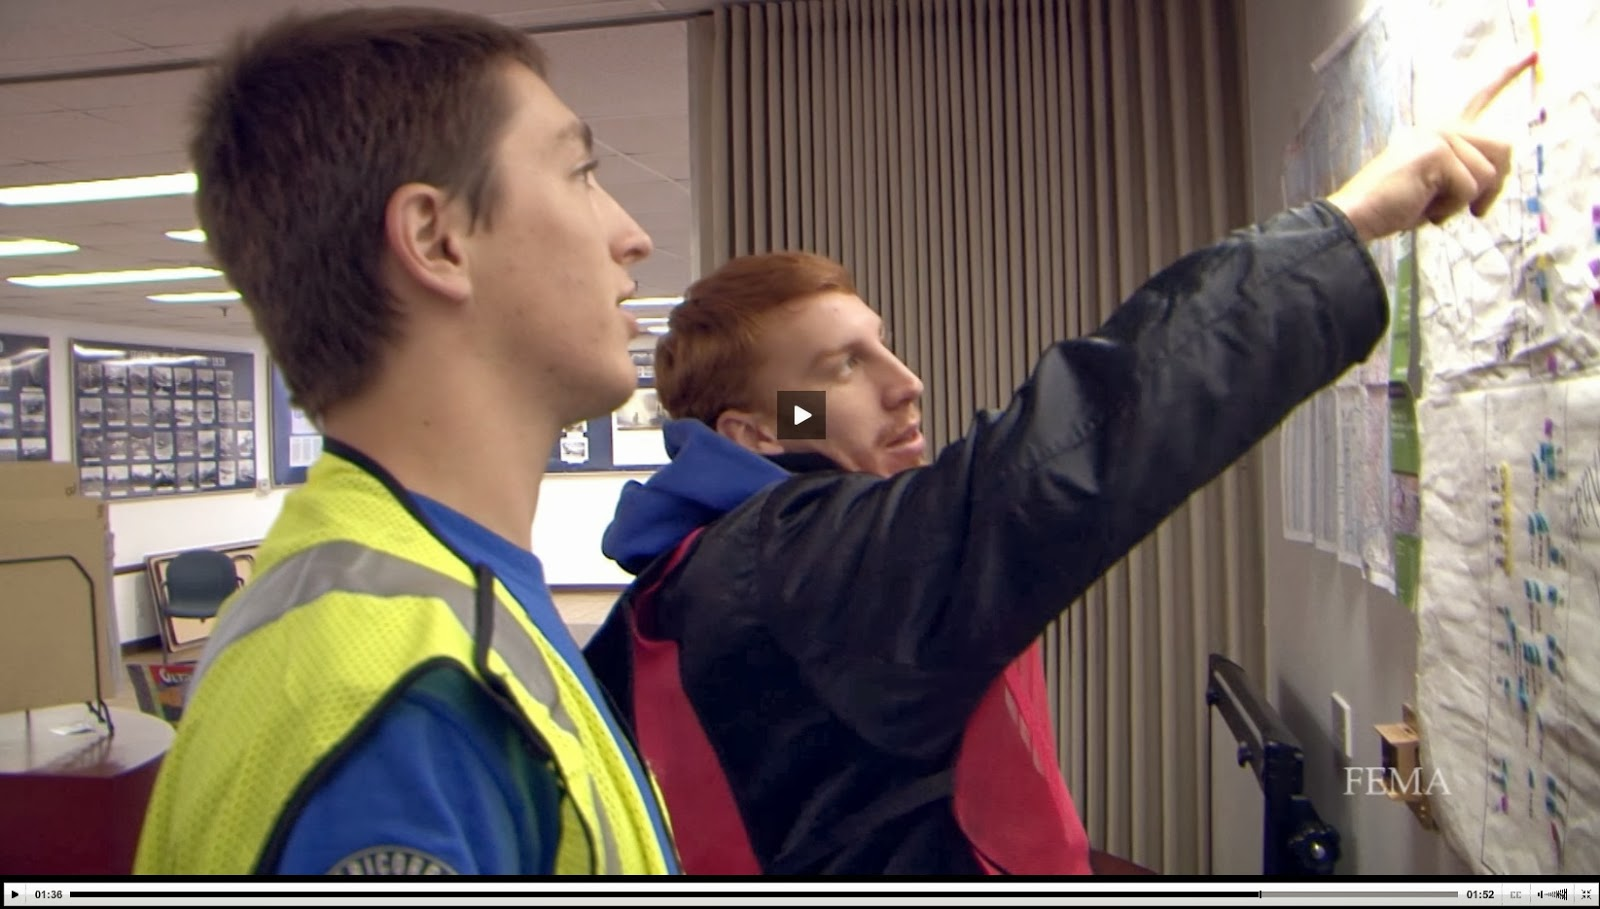 Video of FEMA Corps members work to rebuild after hurricane sandy